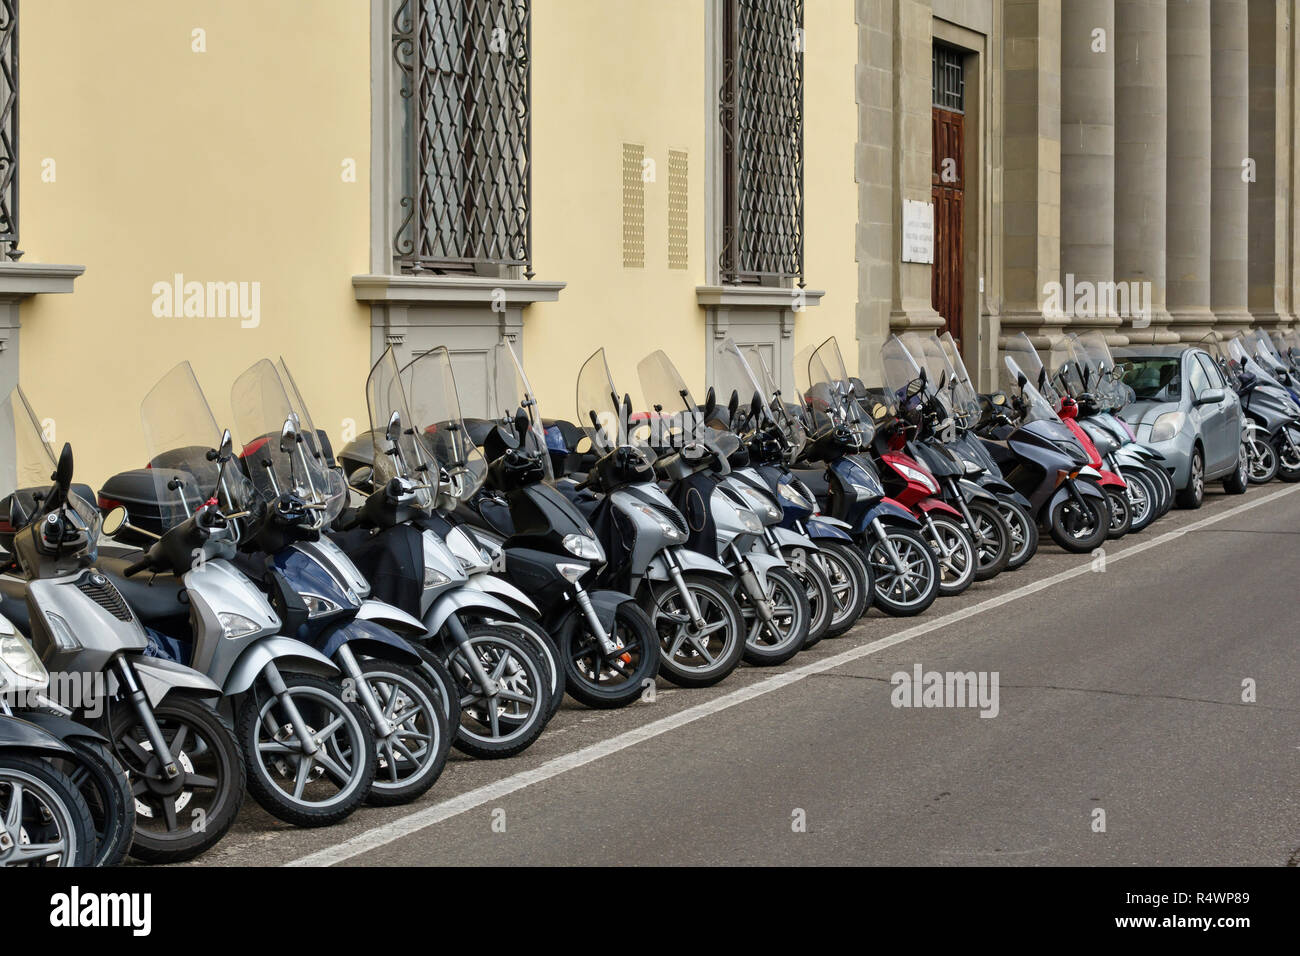 Florence, Tuscany, Italy. A long row of neatly parked motorcycles, mopeds and scooters, with a small car squeezed in - Stock Image